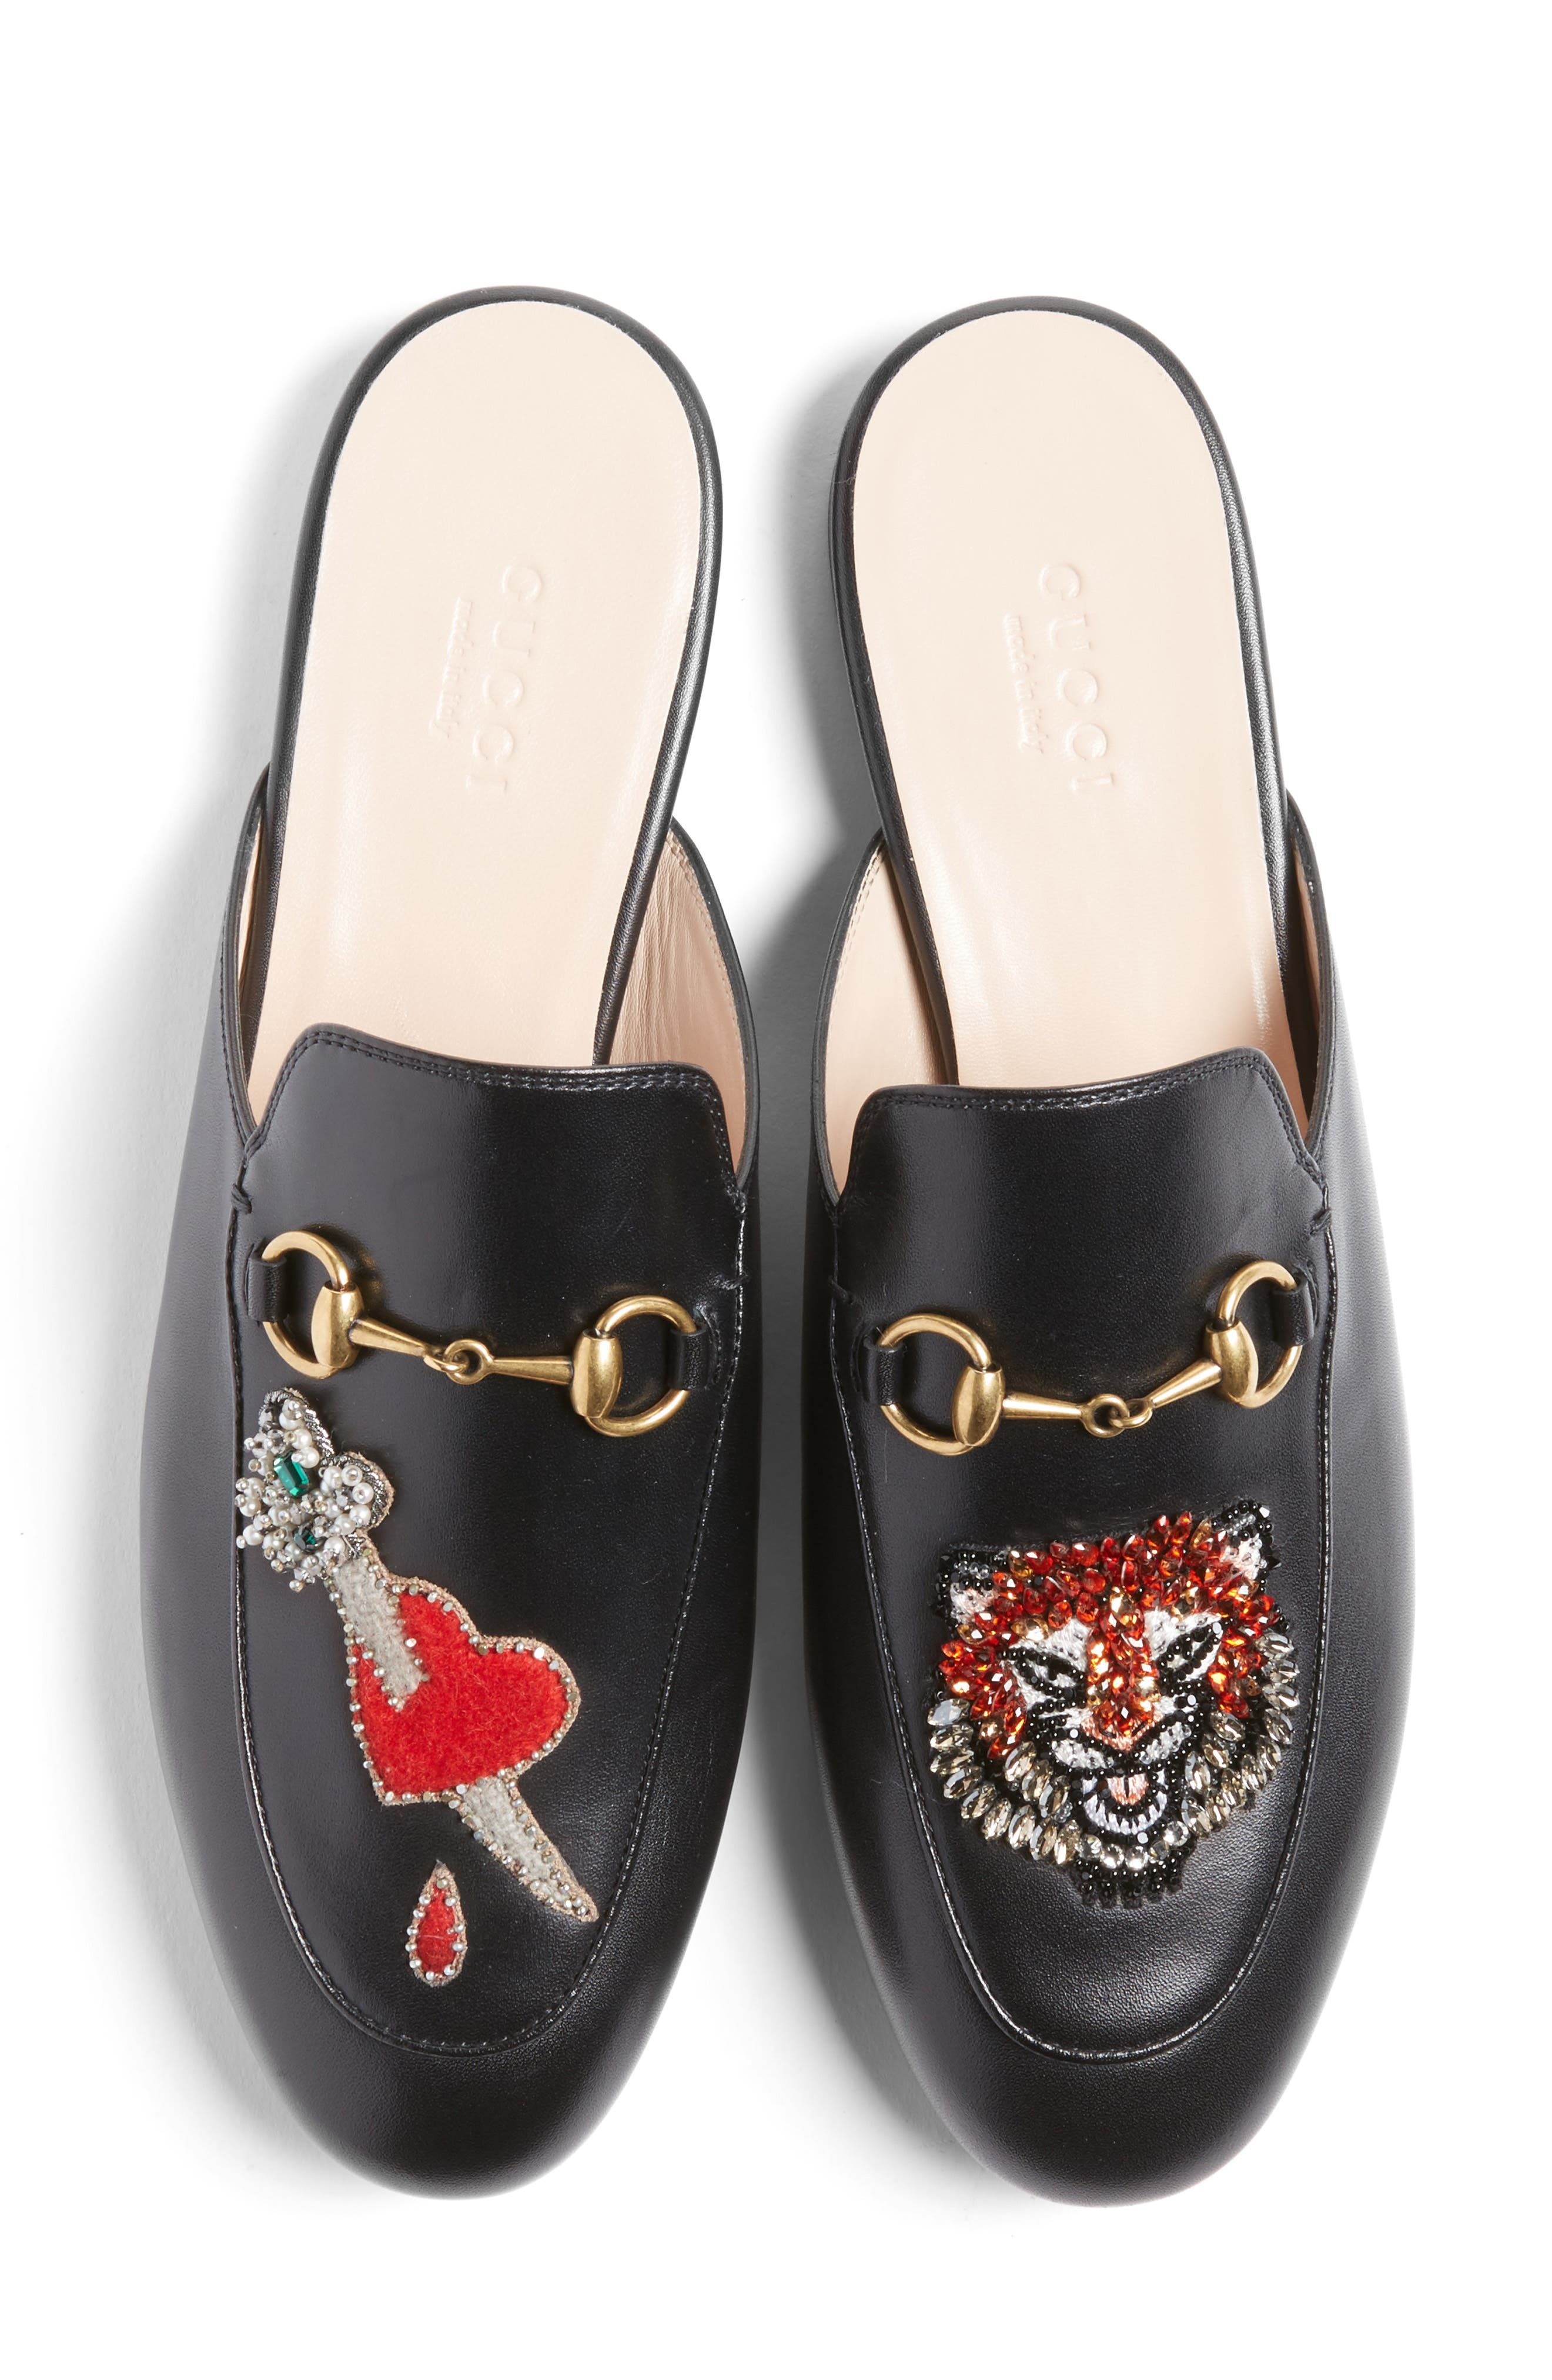 GUCCI Princetown Mule Loafer